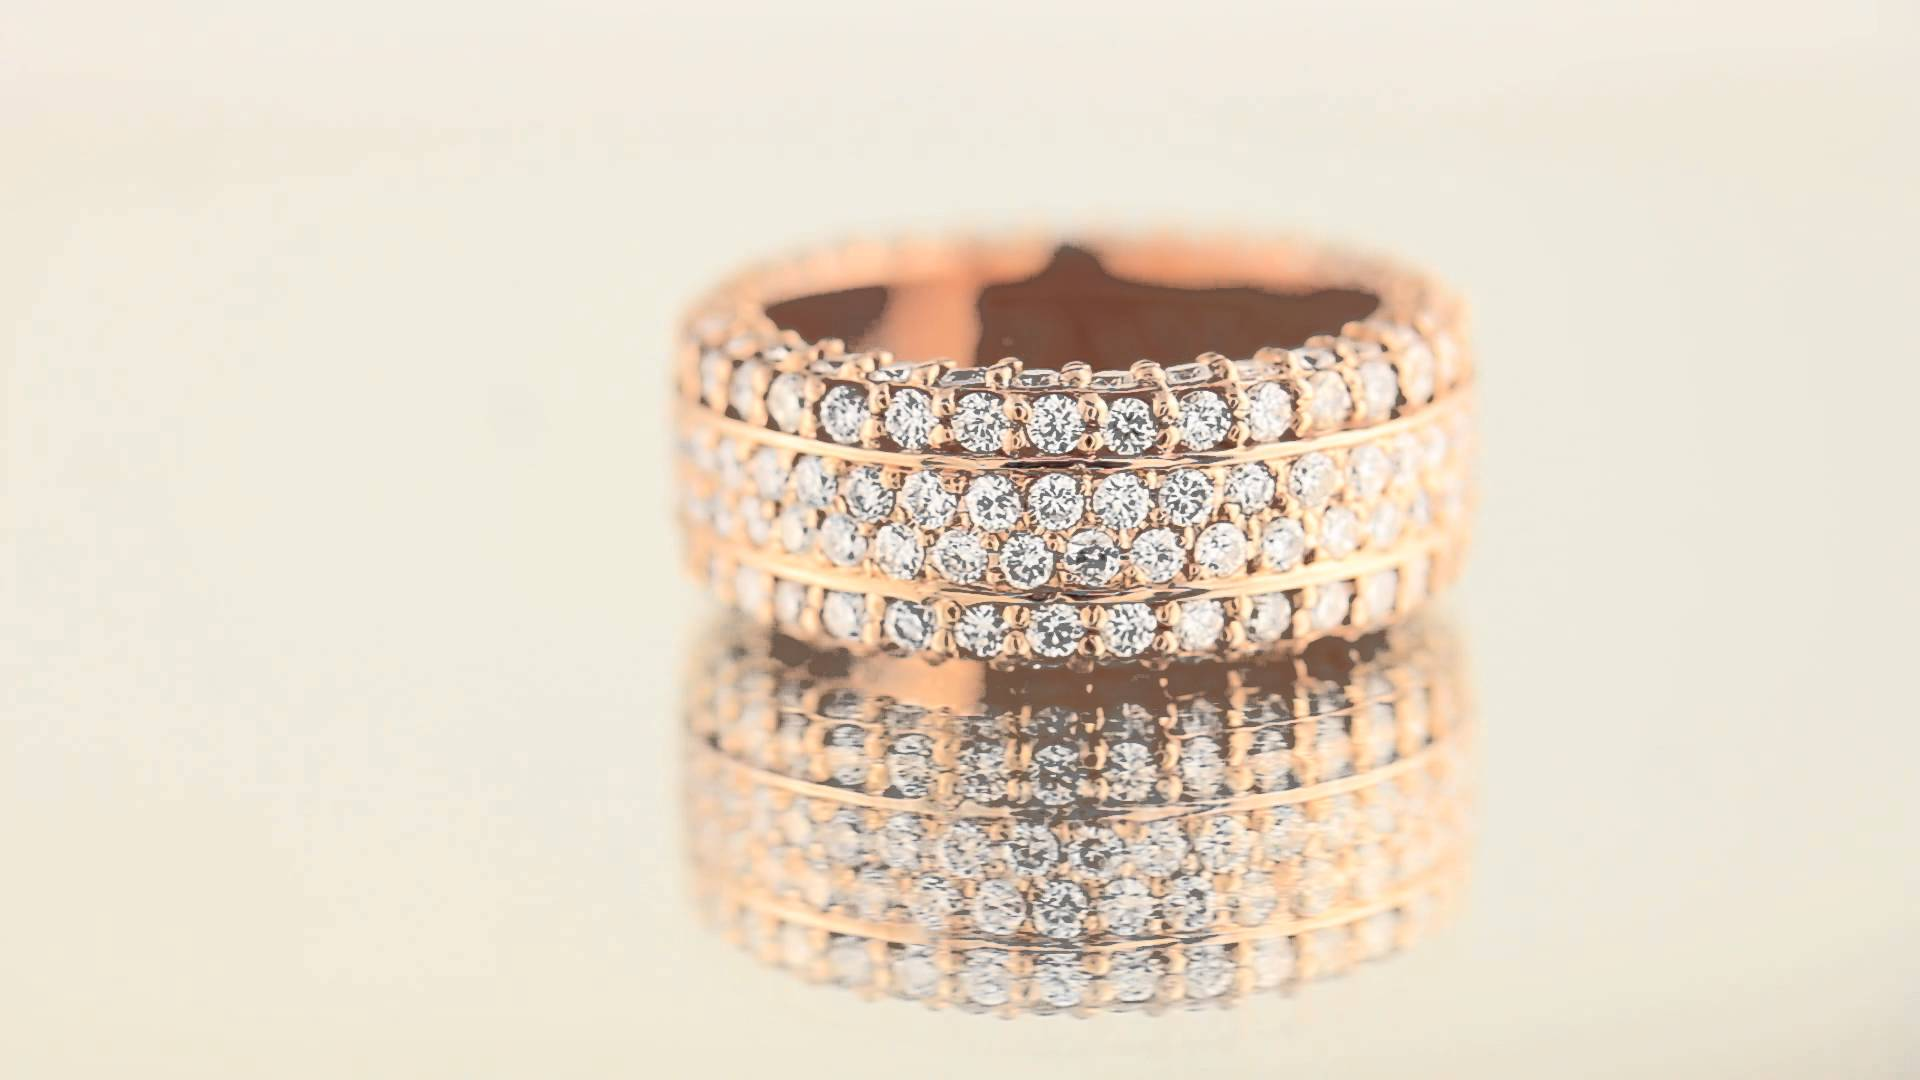 Avianne's Ring Collection For Men And Women Is Worth All The Money